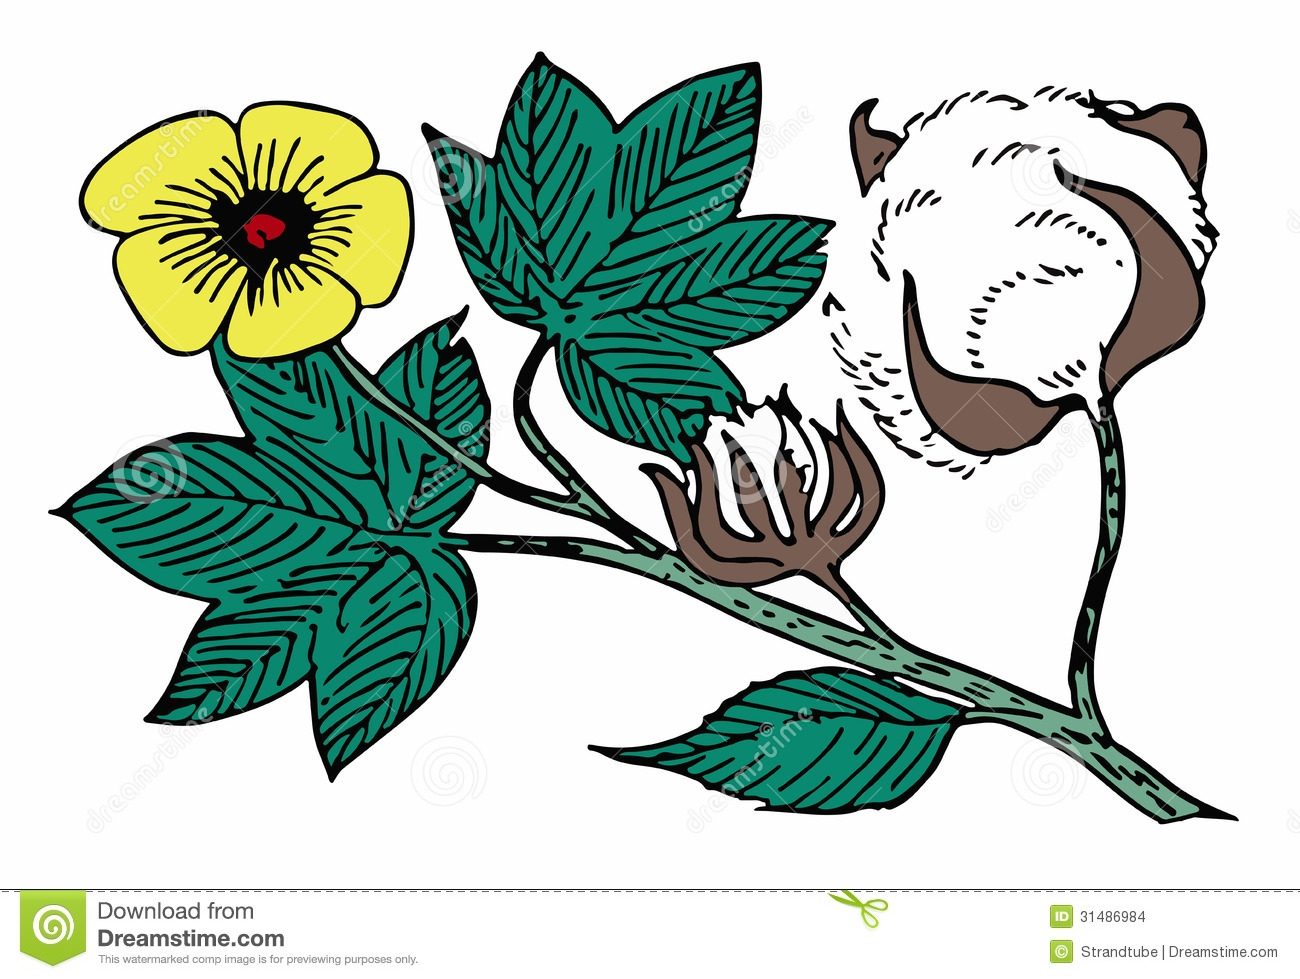 cotton clipart at getdrawings com free for personal use cotton rh getdrawings com clipart coton cotton clipart panda